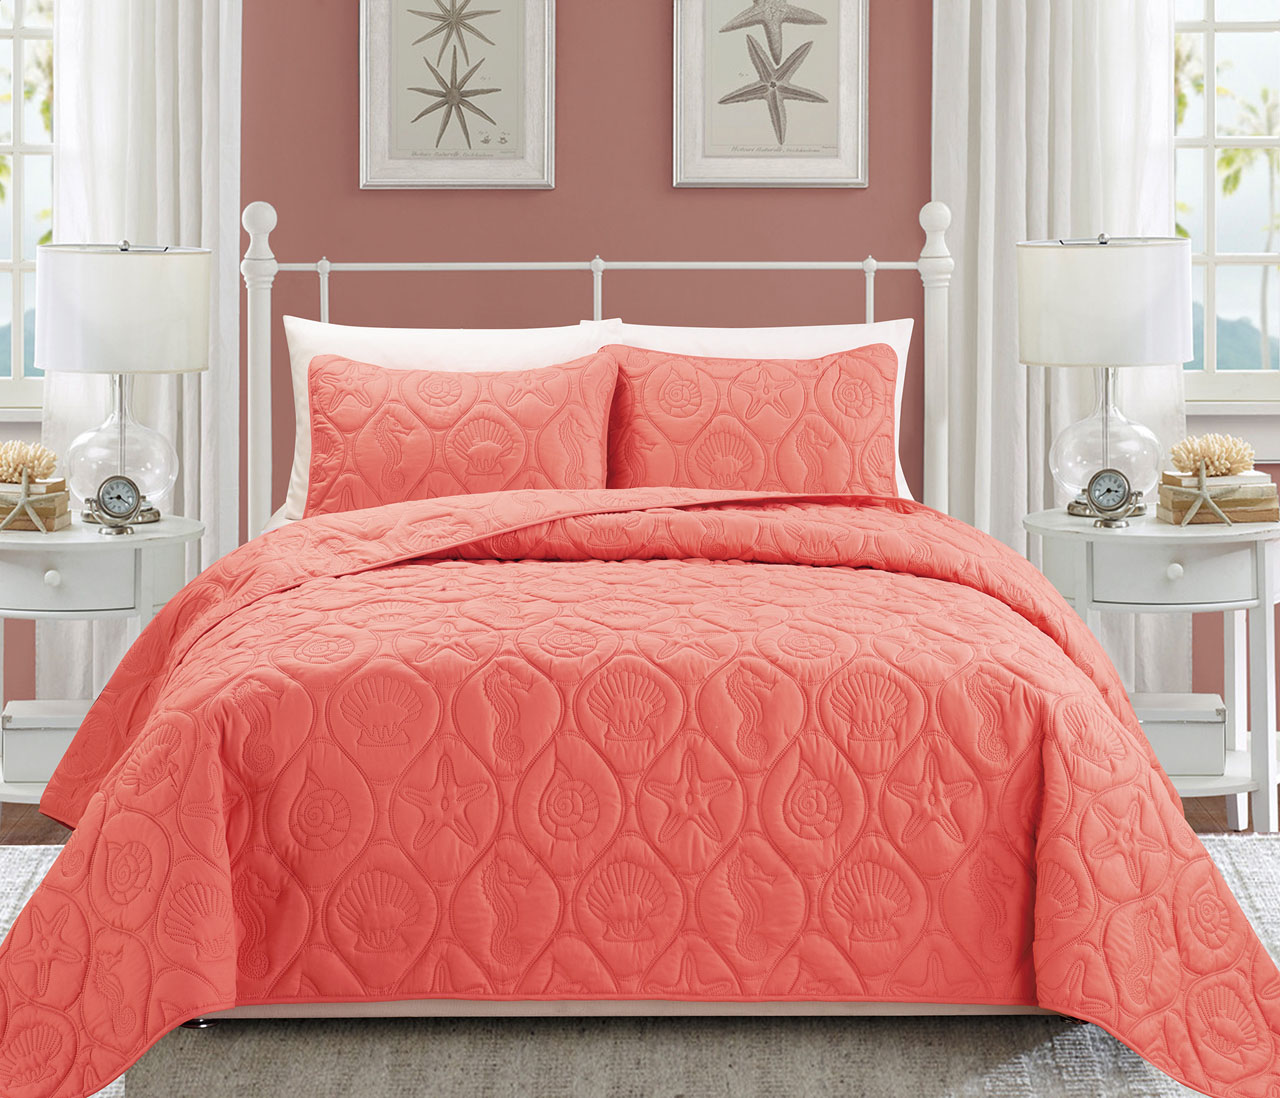 Quilt & Coverlet Sets : bedding quilt sets - Adamdwight.com